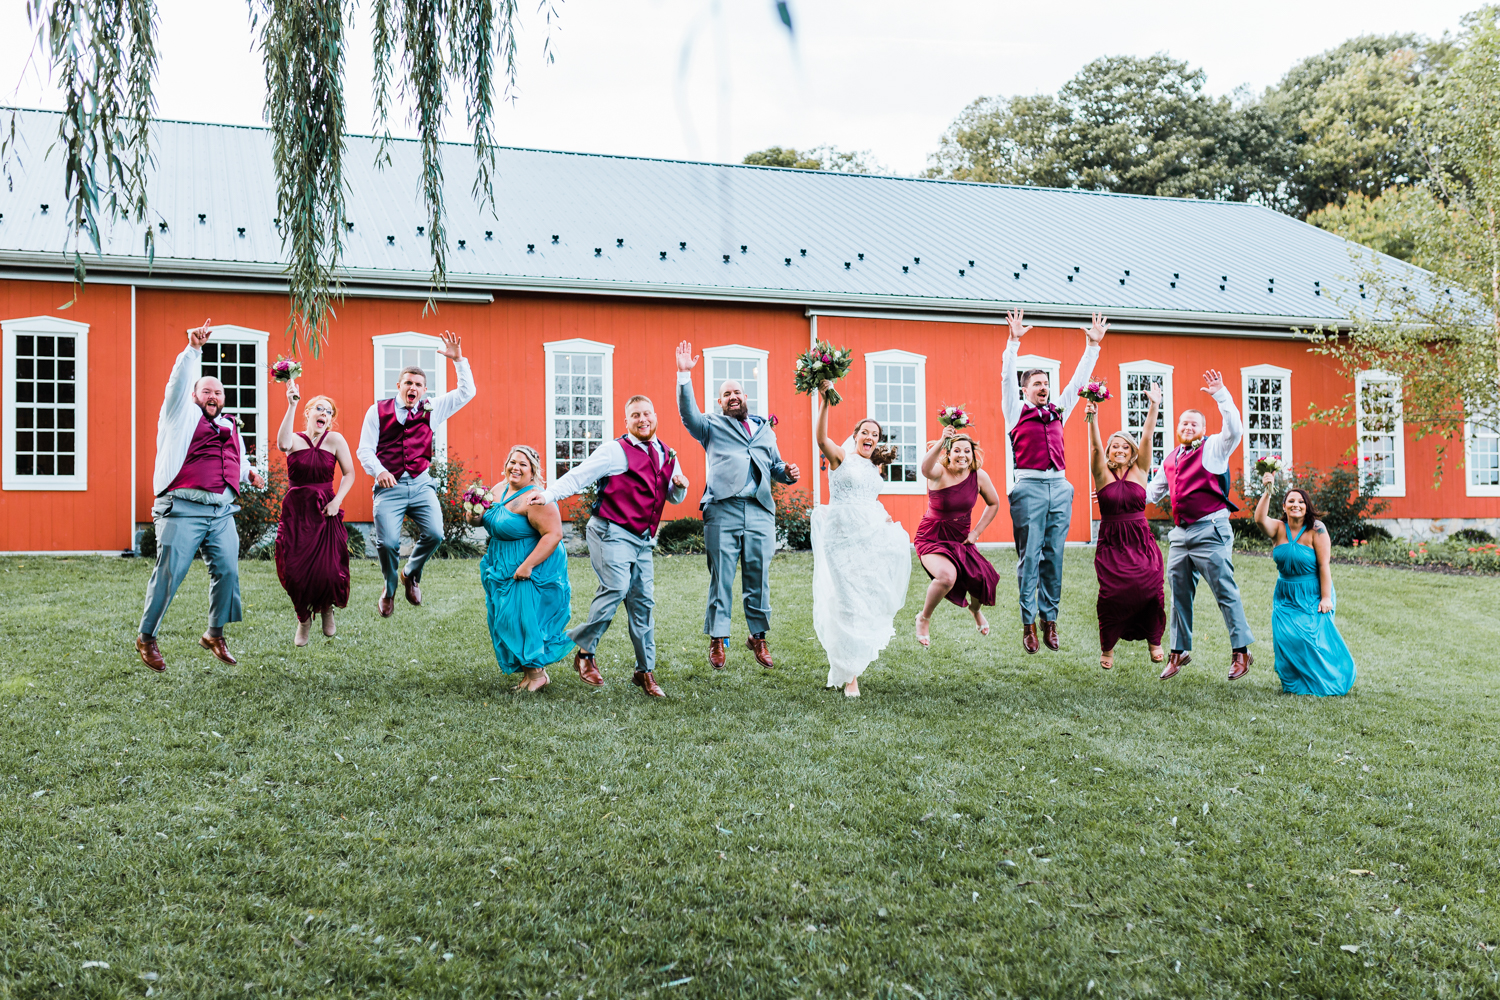 Bridal party jumping together and having fun at Pond View Farm - top rated MD wedding photographer and cinematographer